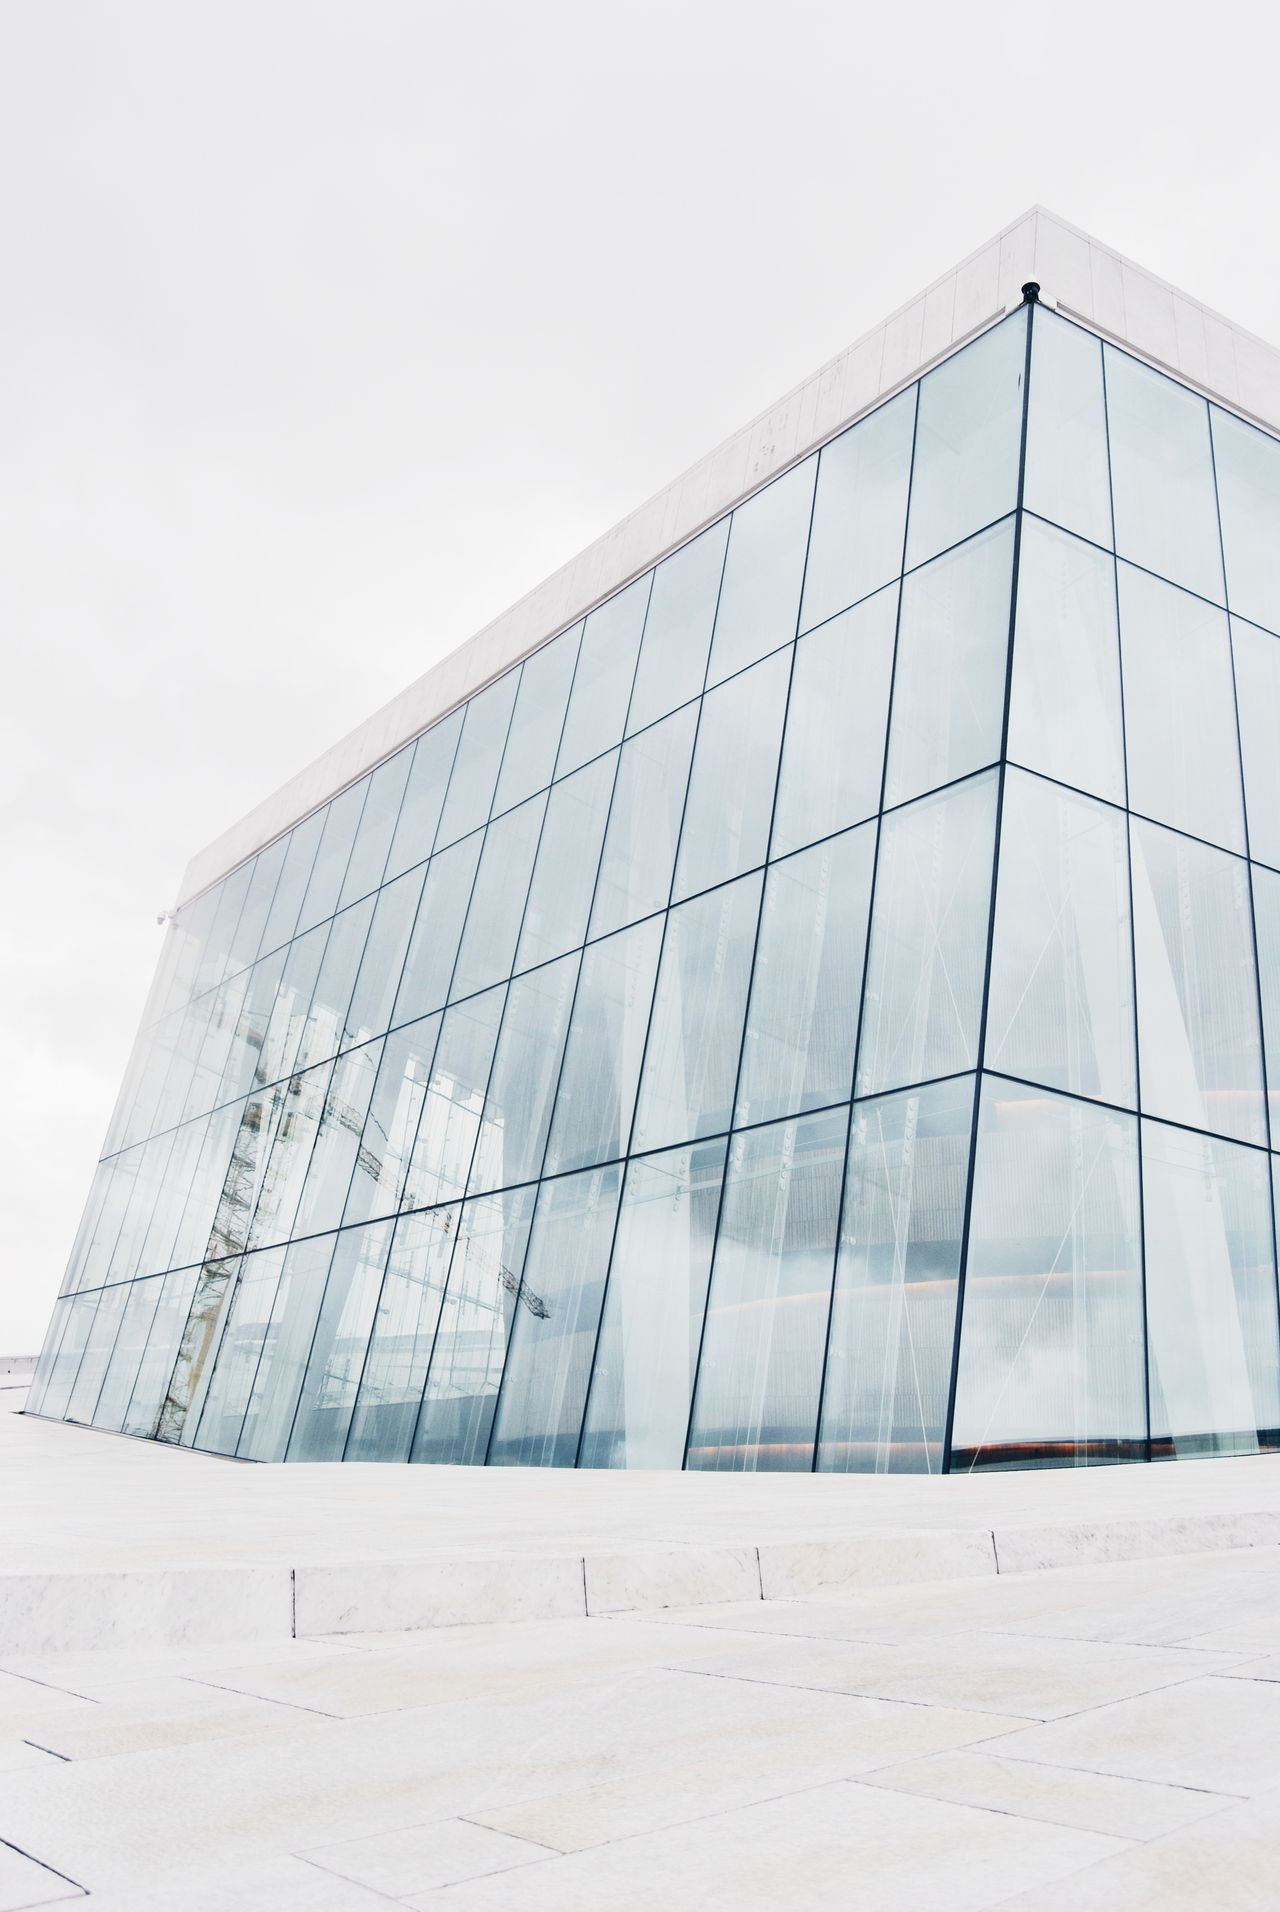 Architecture Building Exterior Built Structure Clear Sky Contemporary Europe Lightness Low Angle View Marble Marbledstone Modern Modern Modern Architecture Nordic Light Norway Office Building Oslo Oslo Opera Oslo Opera House Oslo, Norway WhiteCollection Snøhetta Studies Of Whiteness White White Album